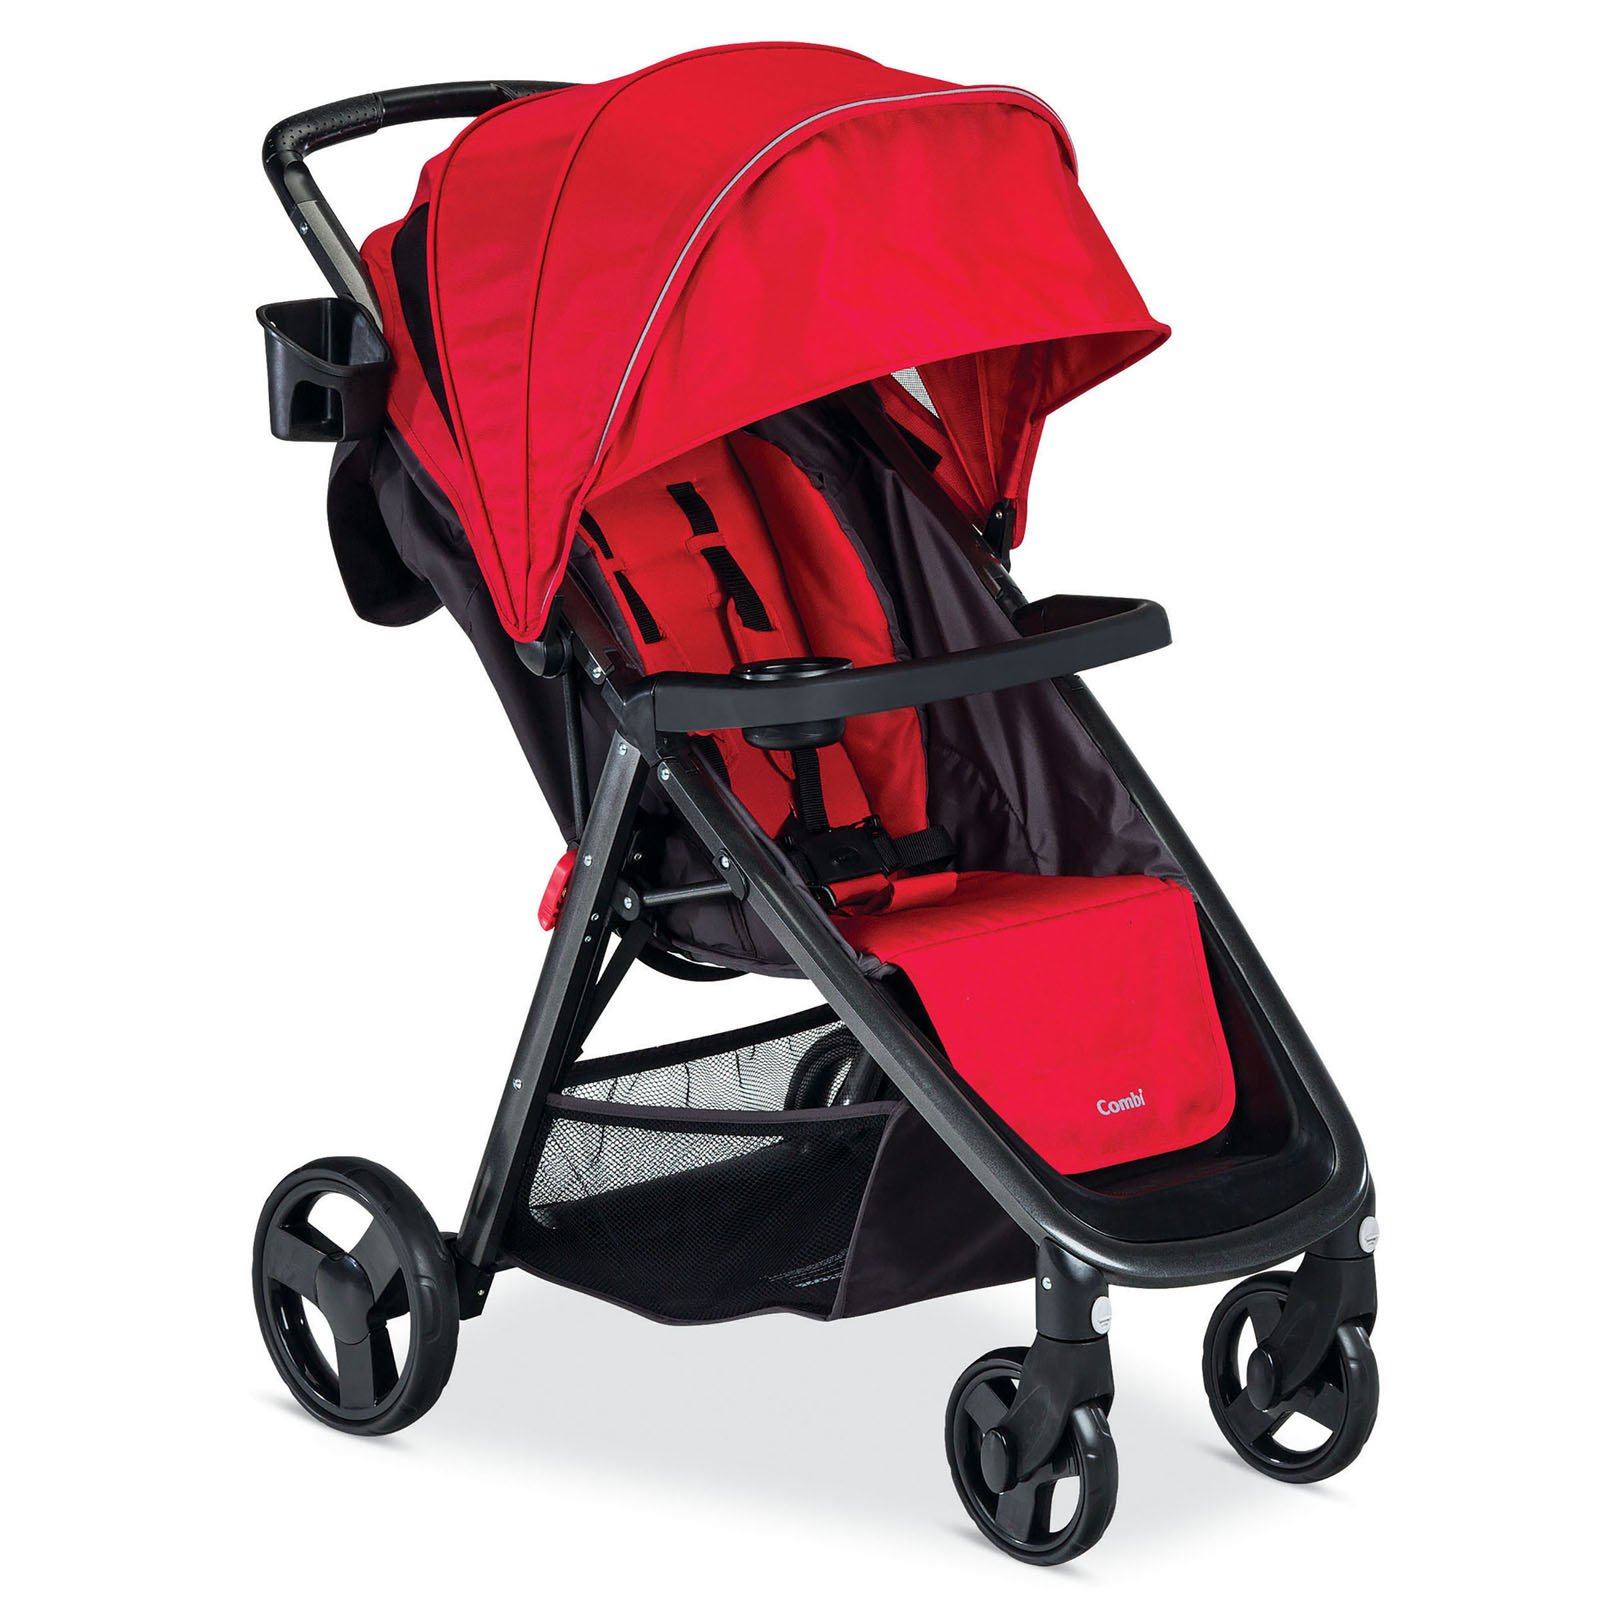 Combi Fold N Go Stroller, Choose your Color